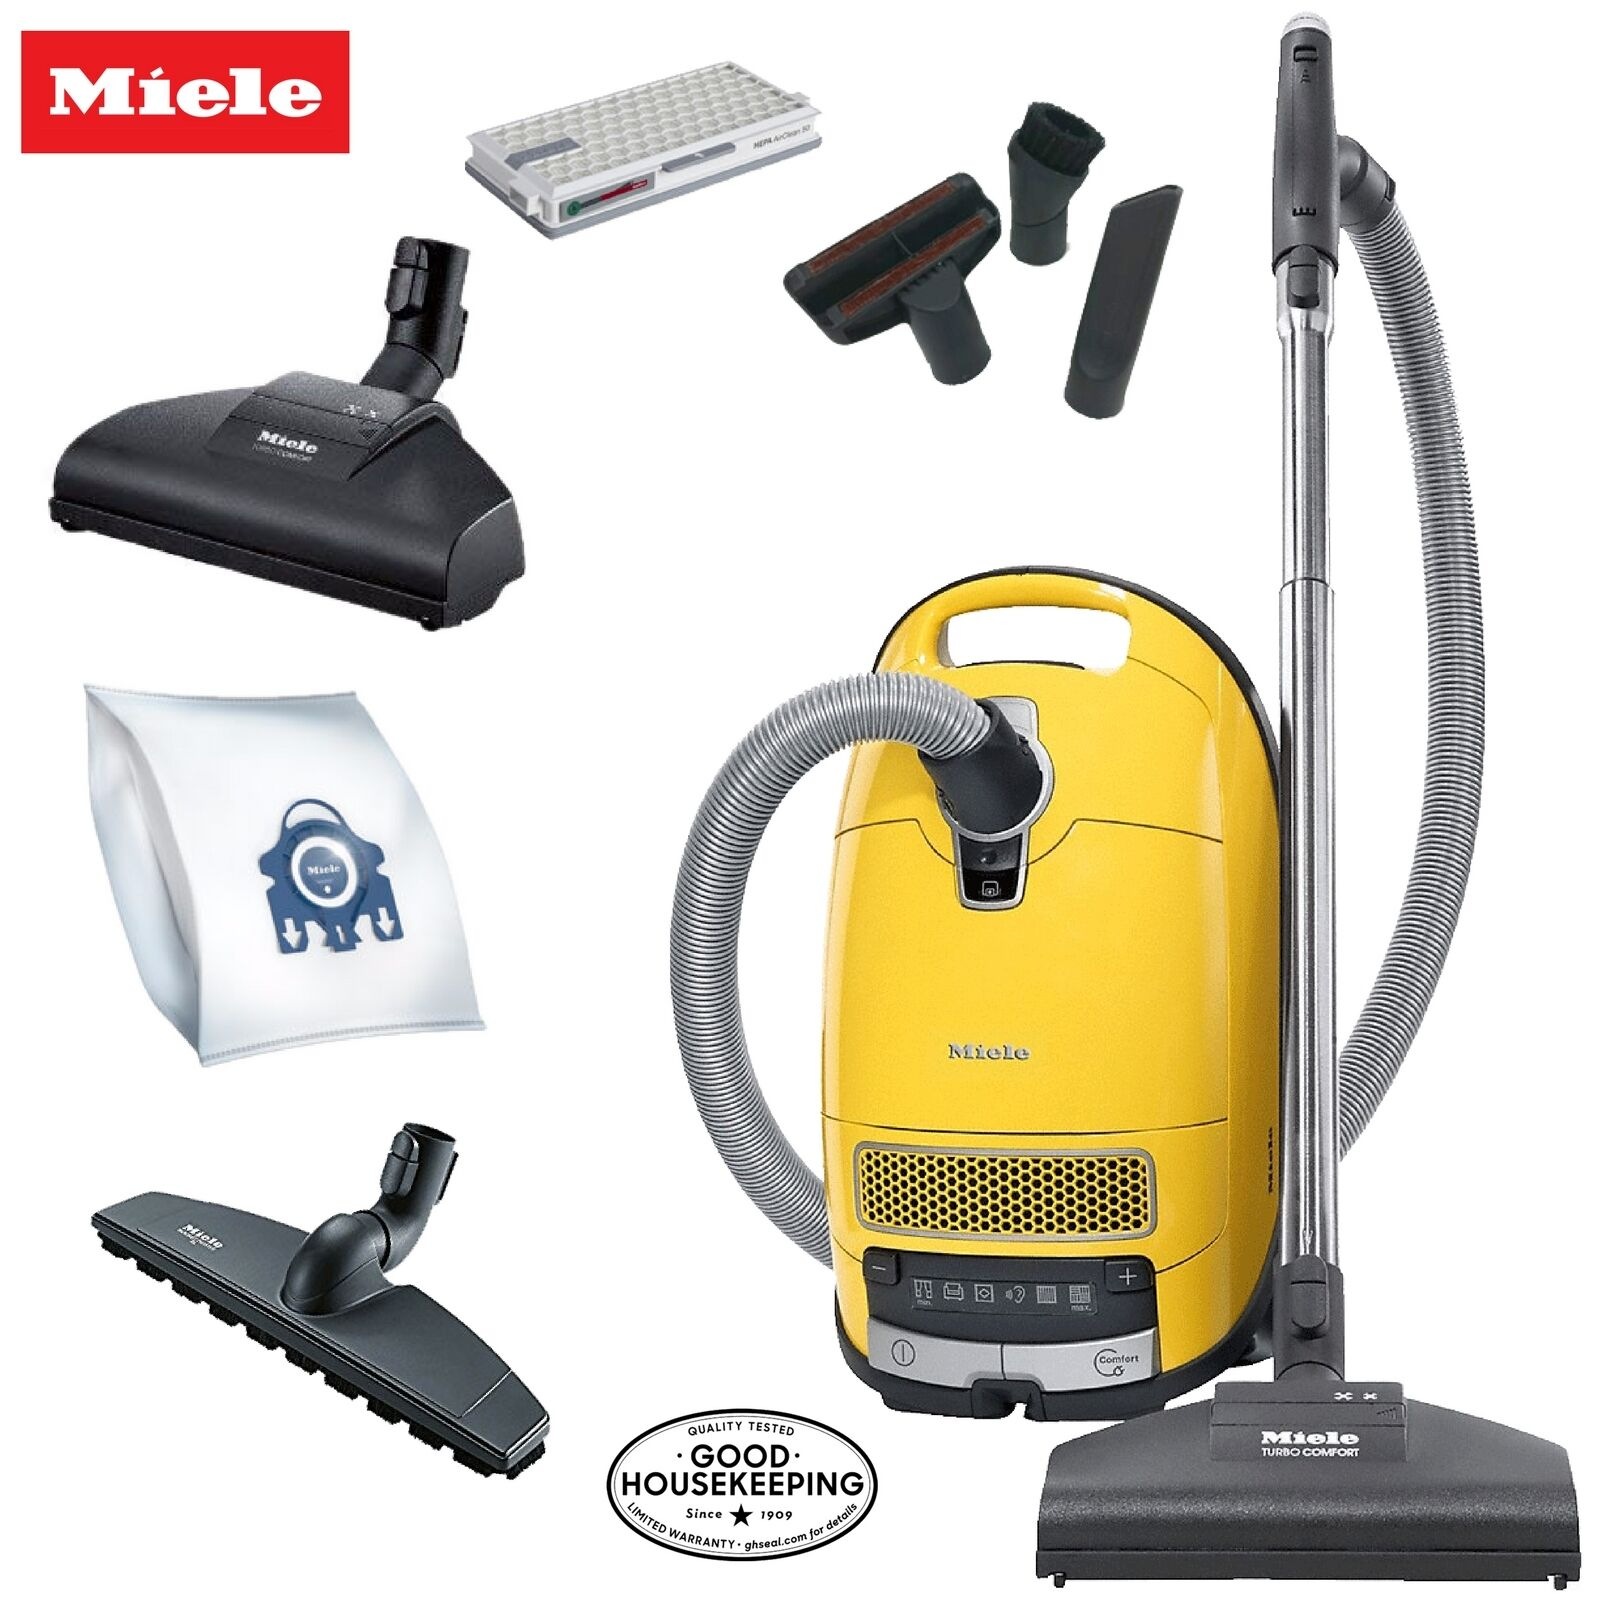 Miele Calima C3 Complete Canister Vacuum Cleaner - Great On